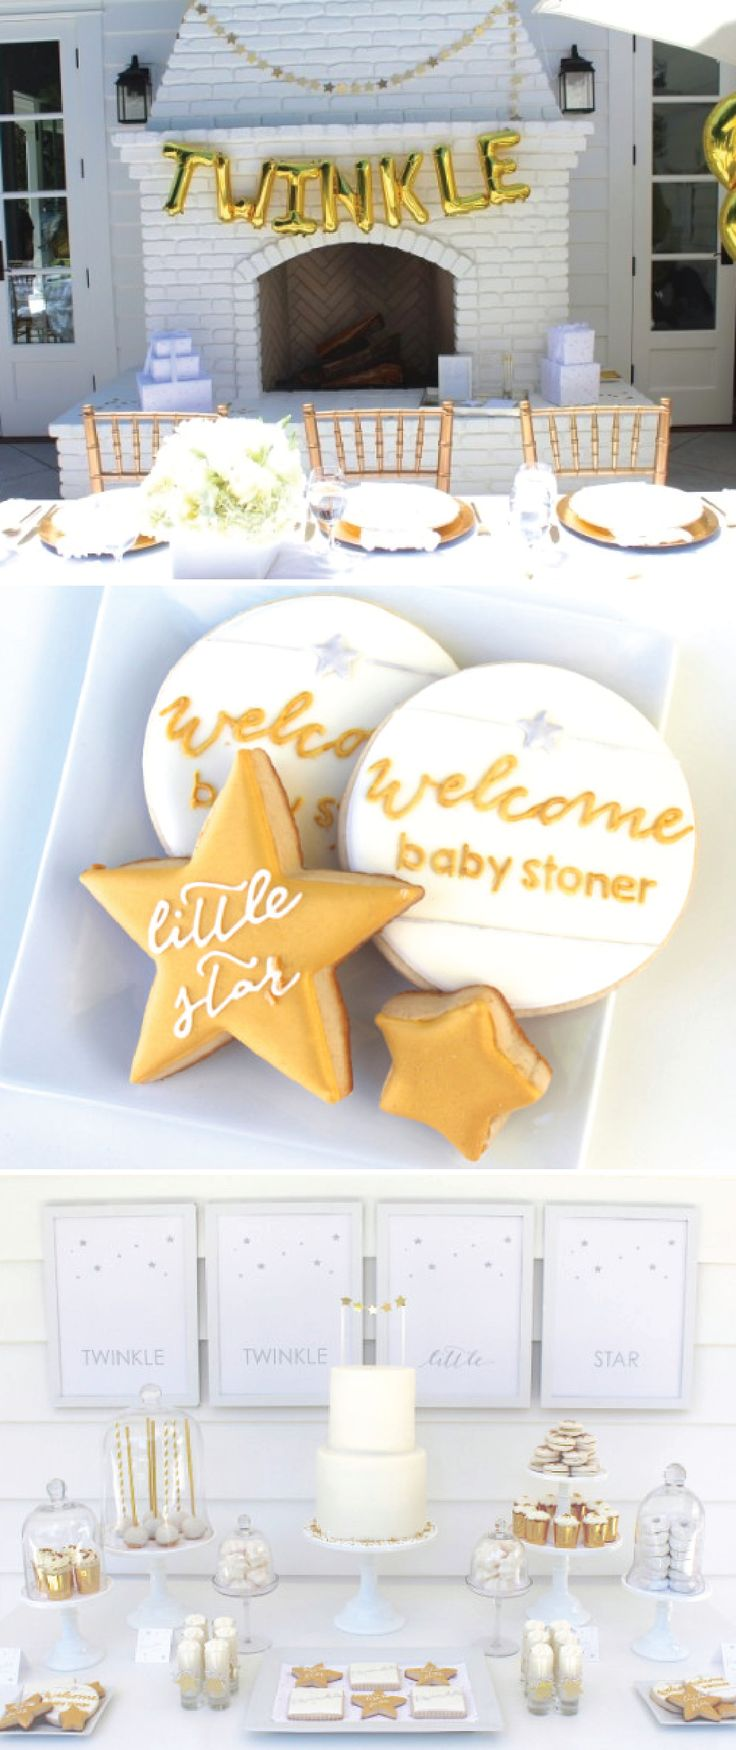 Celebrate the soon-to-arrive little boy or girl in your friend's life with this adorable star-themed baby shower. From party food to favor ideas, you can find all the gender-neutral baby shower décor inspiration you need to plan the ultimate celebration.